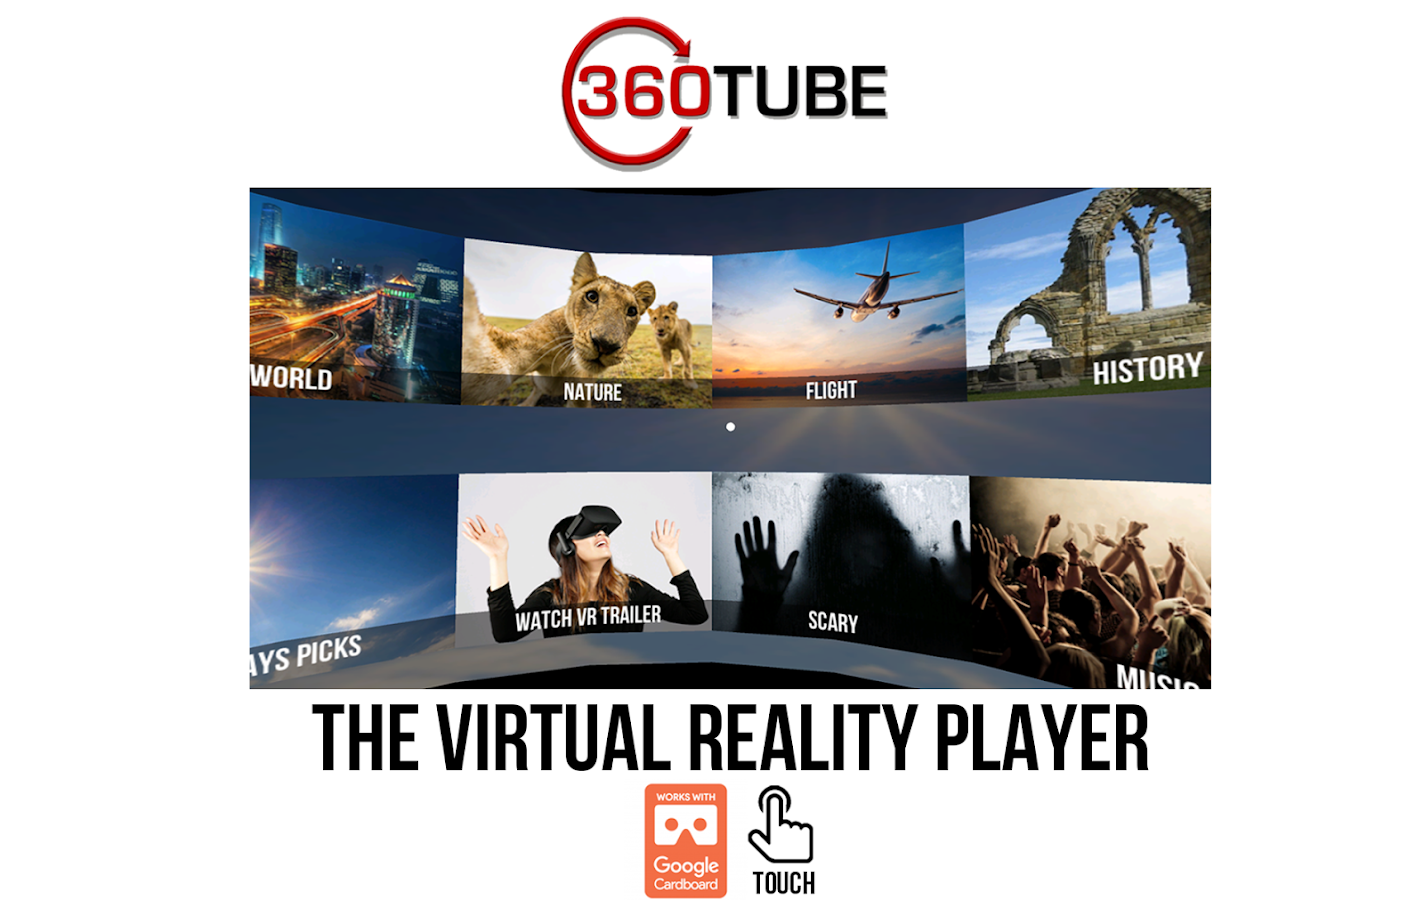 360TUBE–VR apps games & videos- screenshot